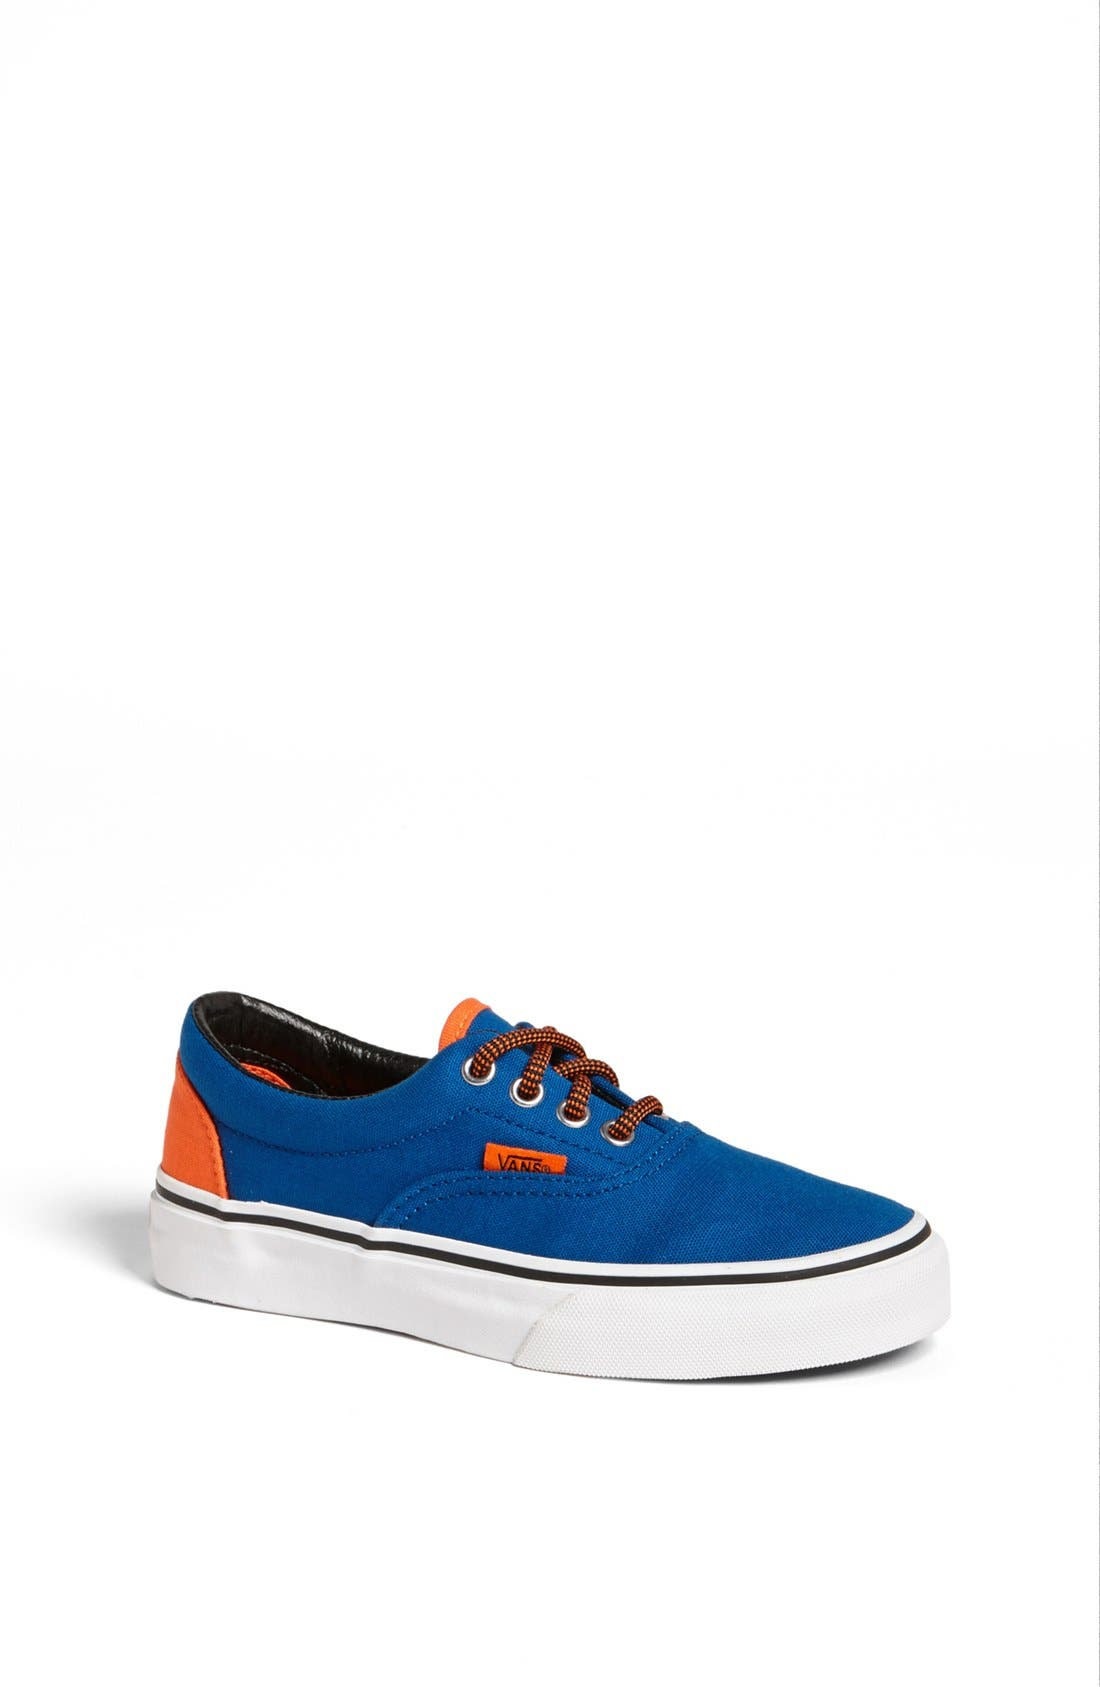 Main Image - Vans 'Era - Heel Pop' Sneaker (Toddler, Little Kid & Big Kid)